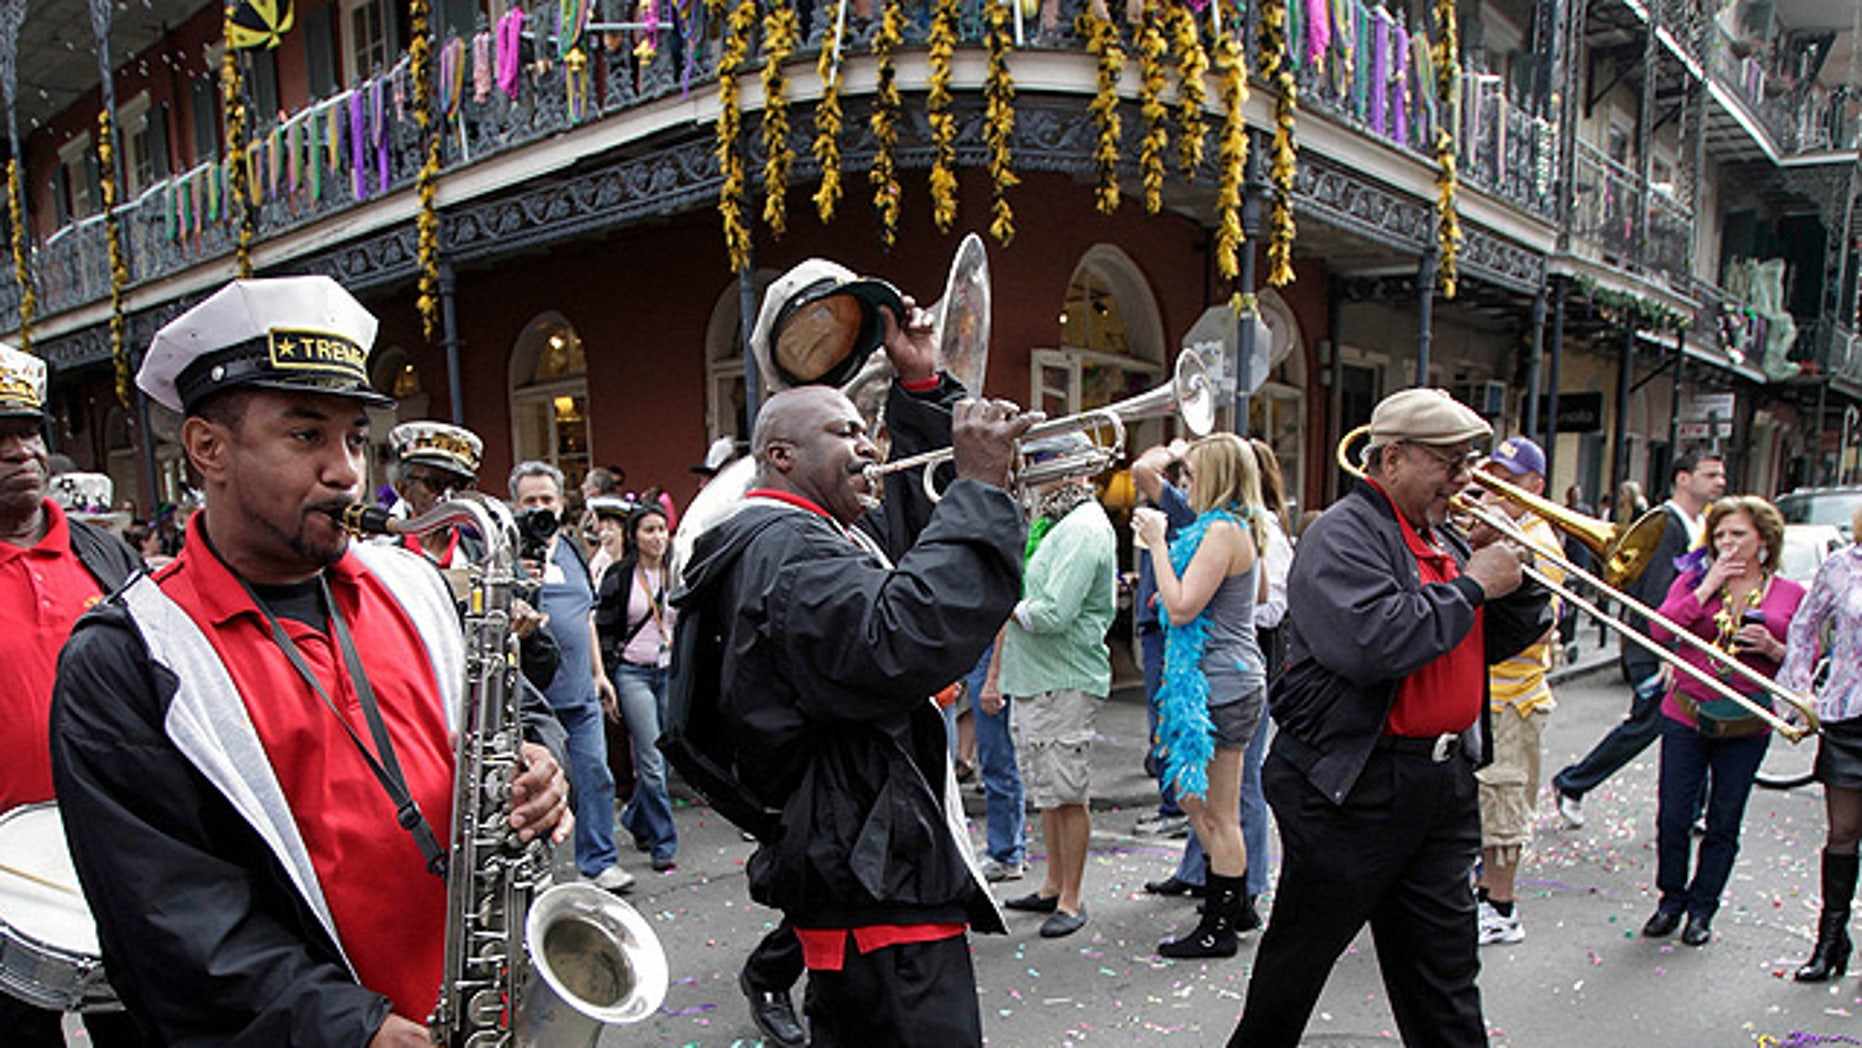 Feb. 21, 2012: Revelers celebrate Mardi Gras in New Orleans' French Quarter, a popular spot for tour guides who say newly-enforced city regulations are trampling their First Amendment rights. (AP)